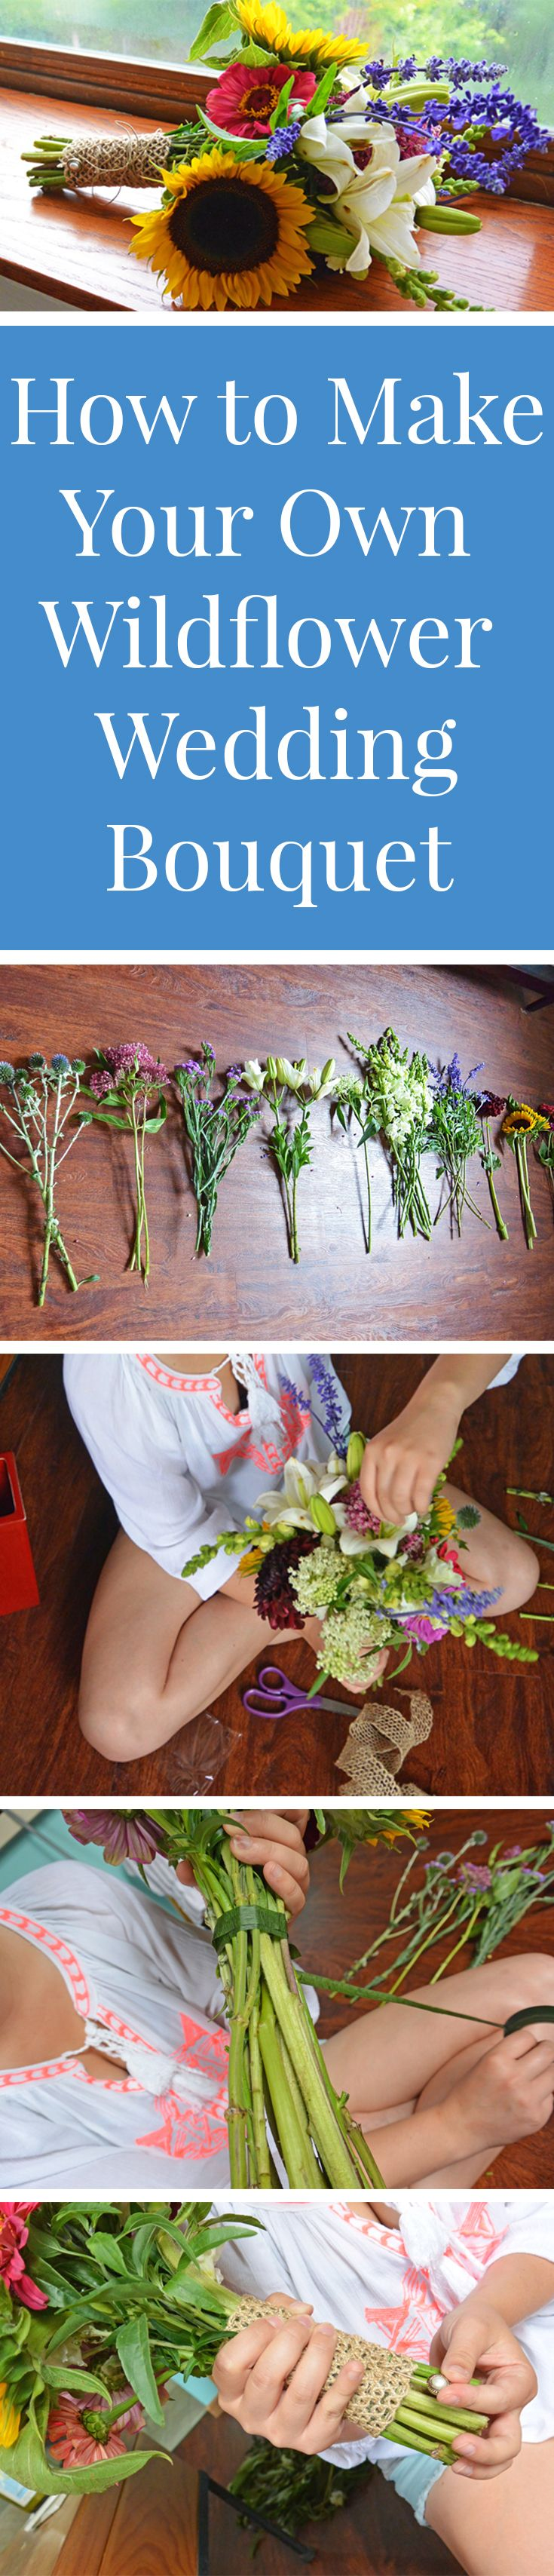 Learn how to make your own wildflower wedding bouquet for $25.